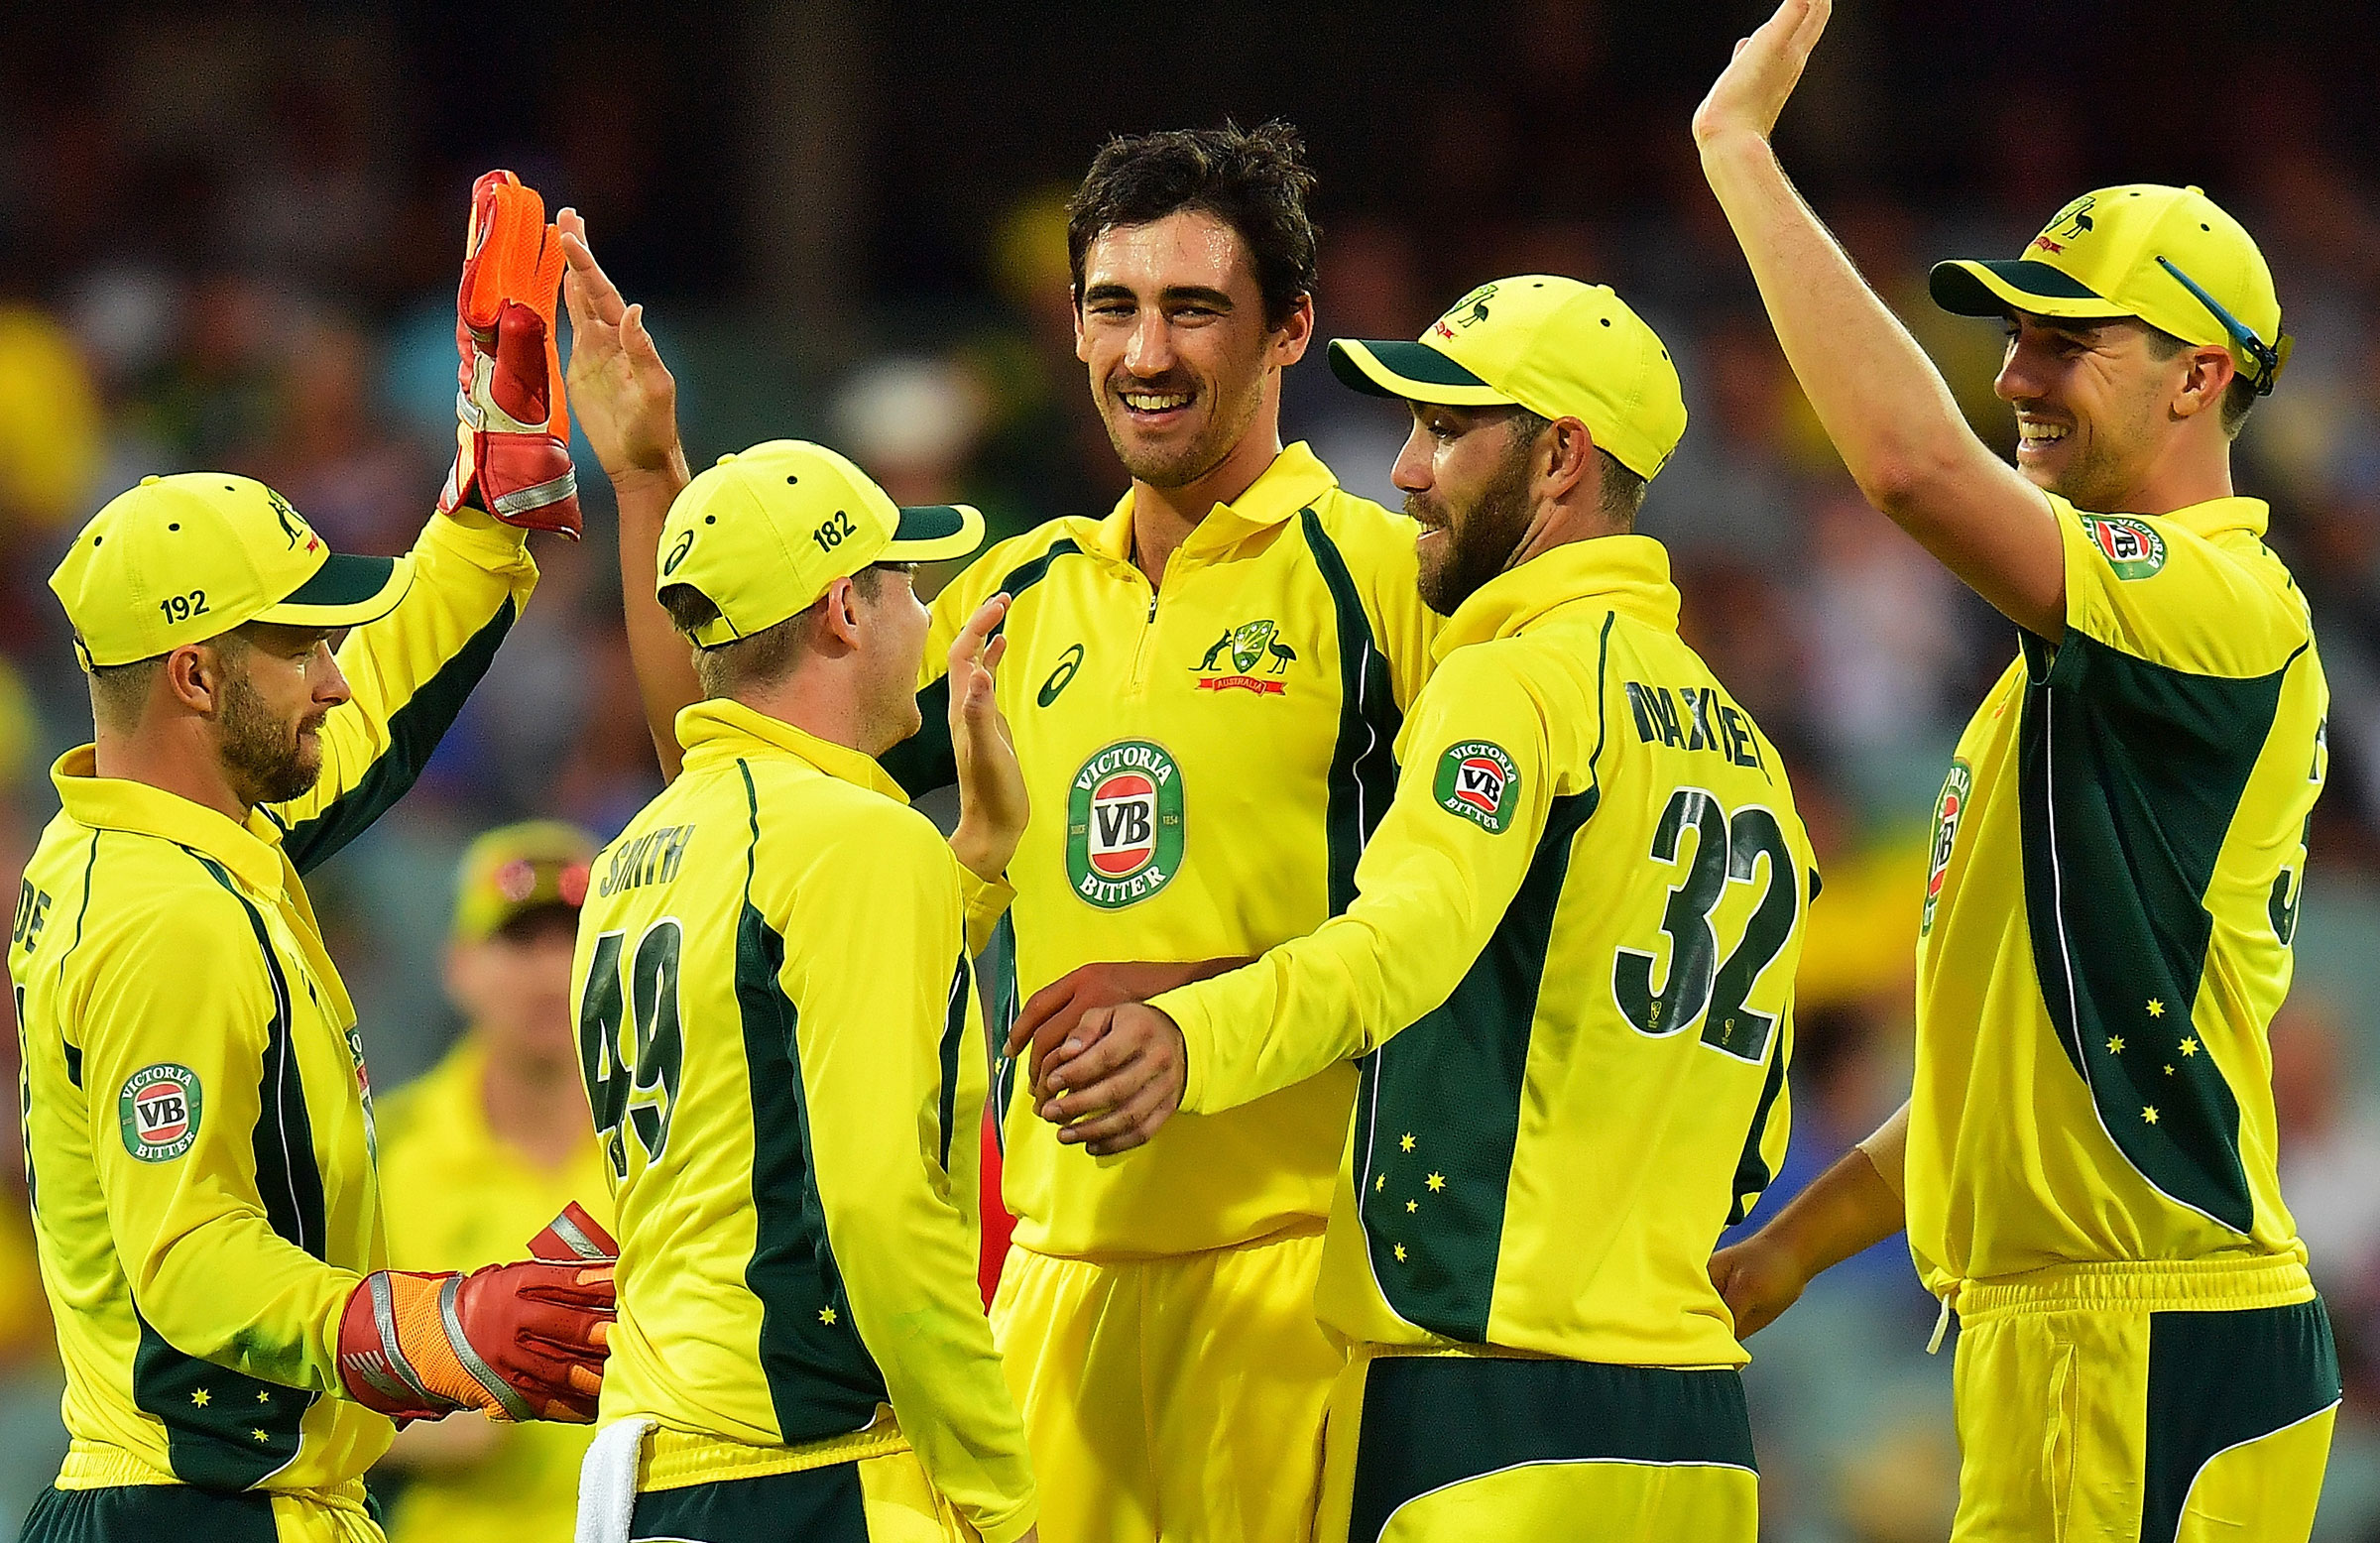 Starc, Pattinson back in Australian squad for Champions Trophy